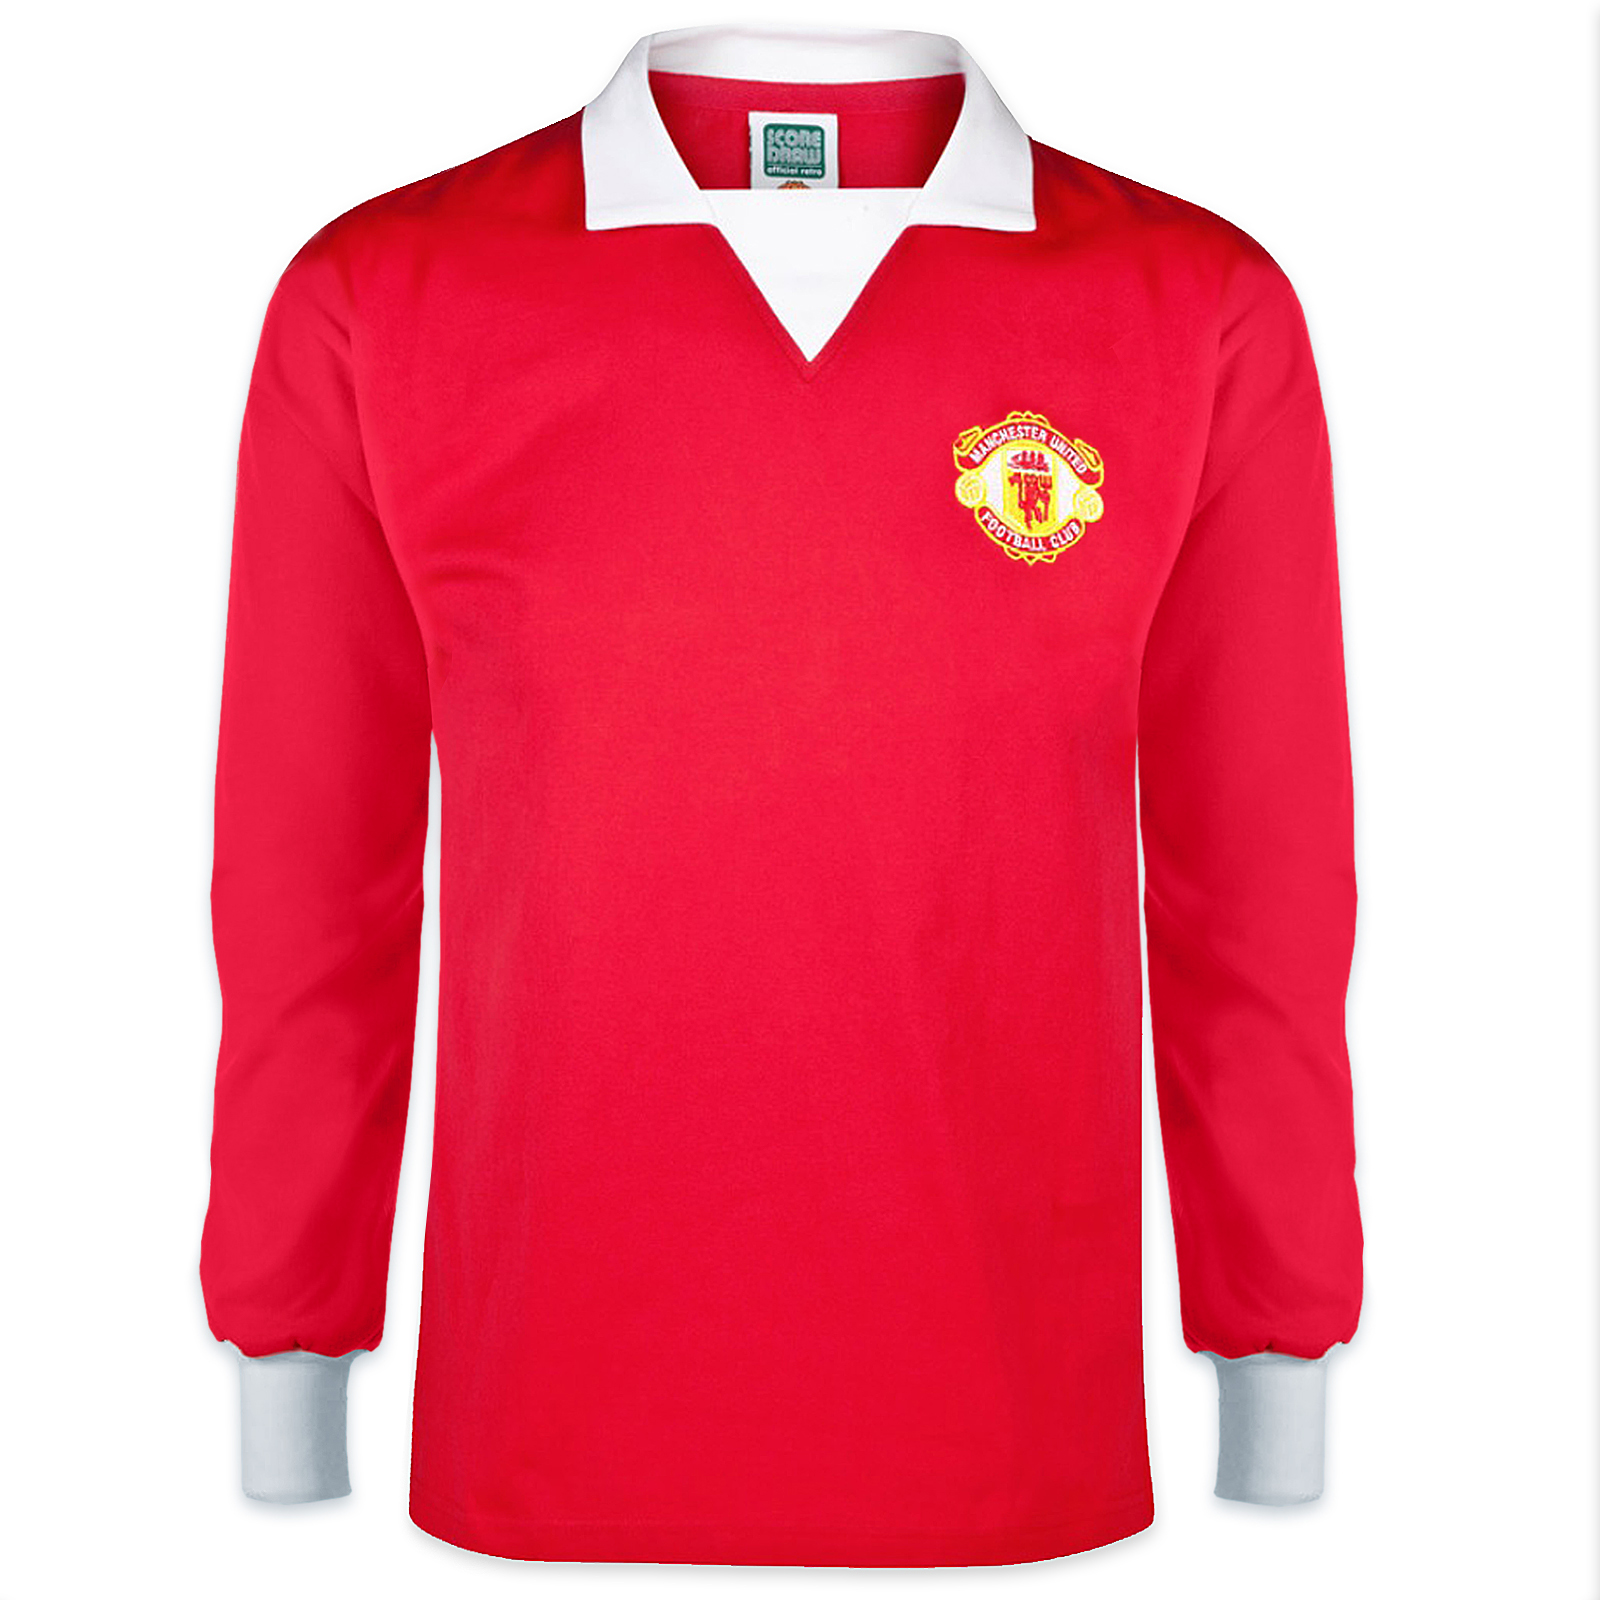 manchester united football club official soccer gift 1973